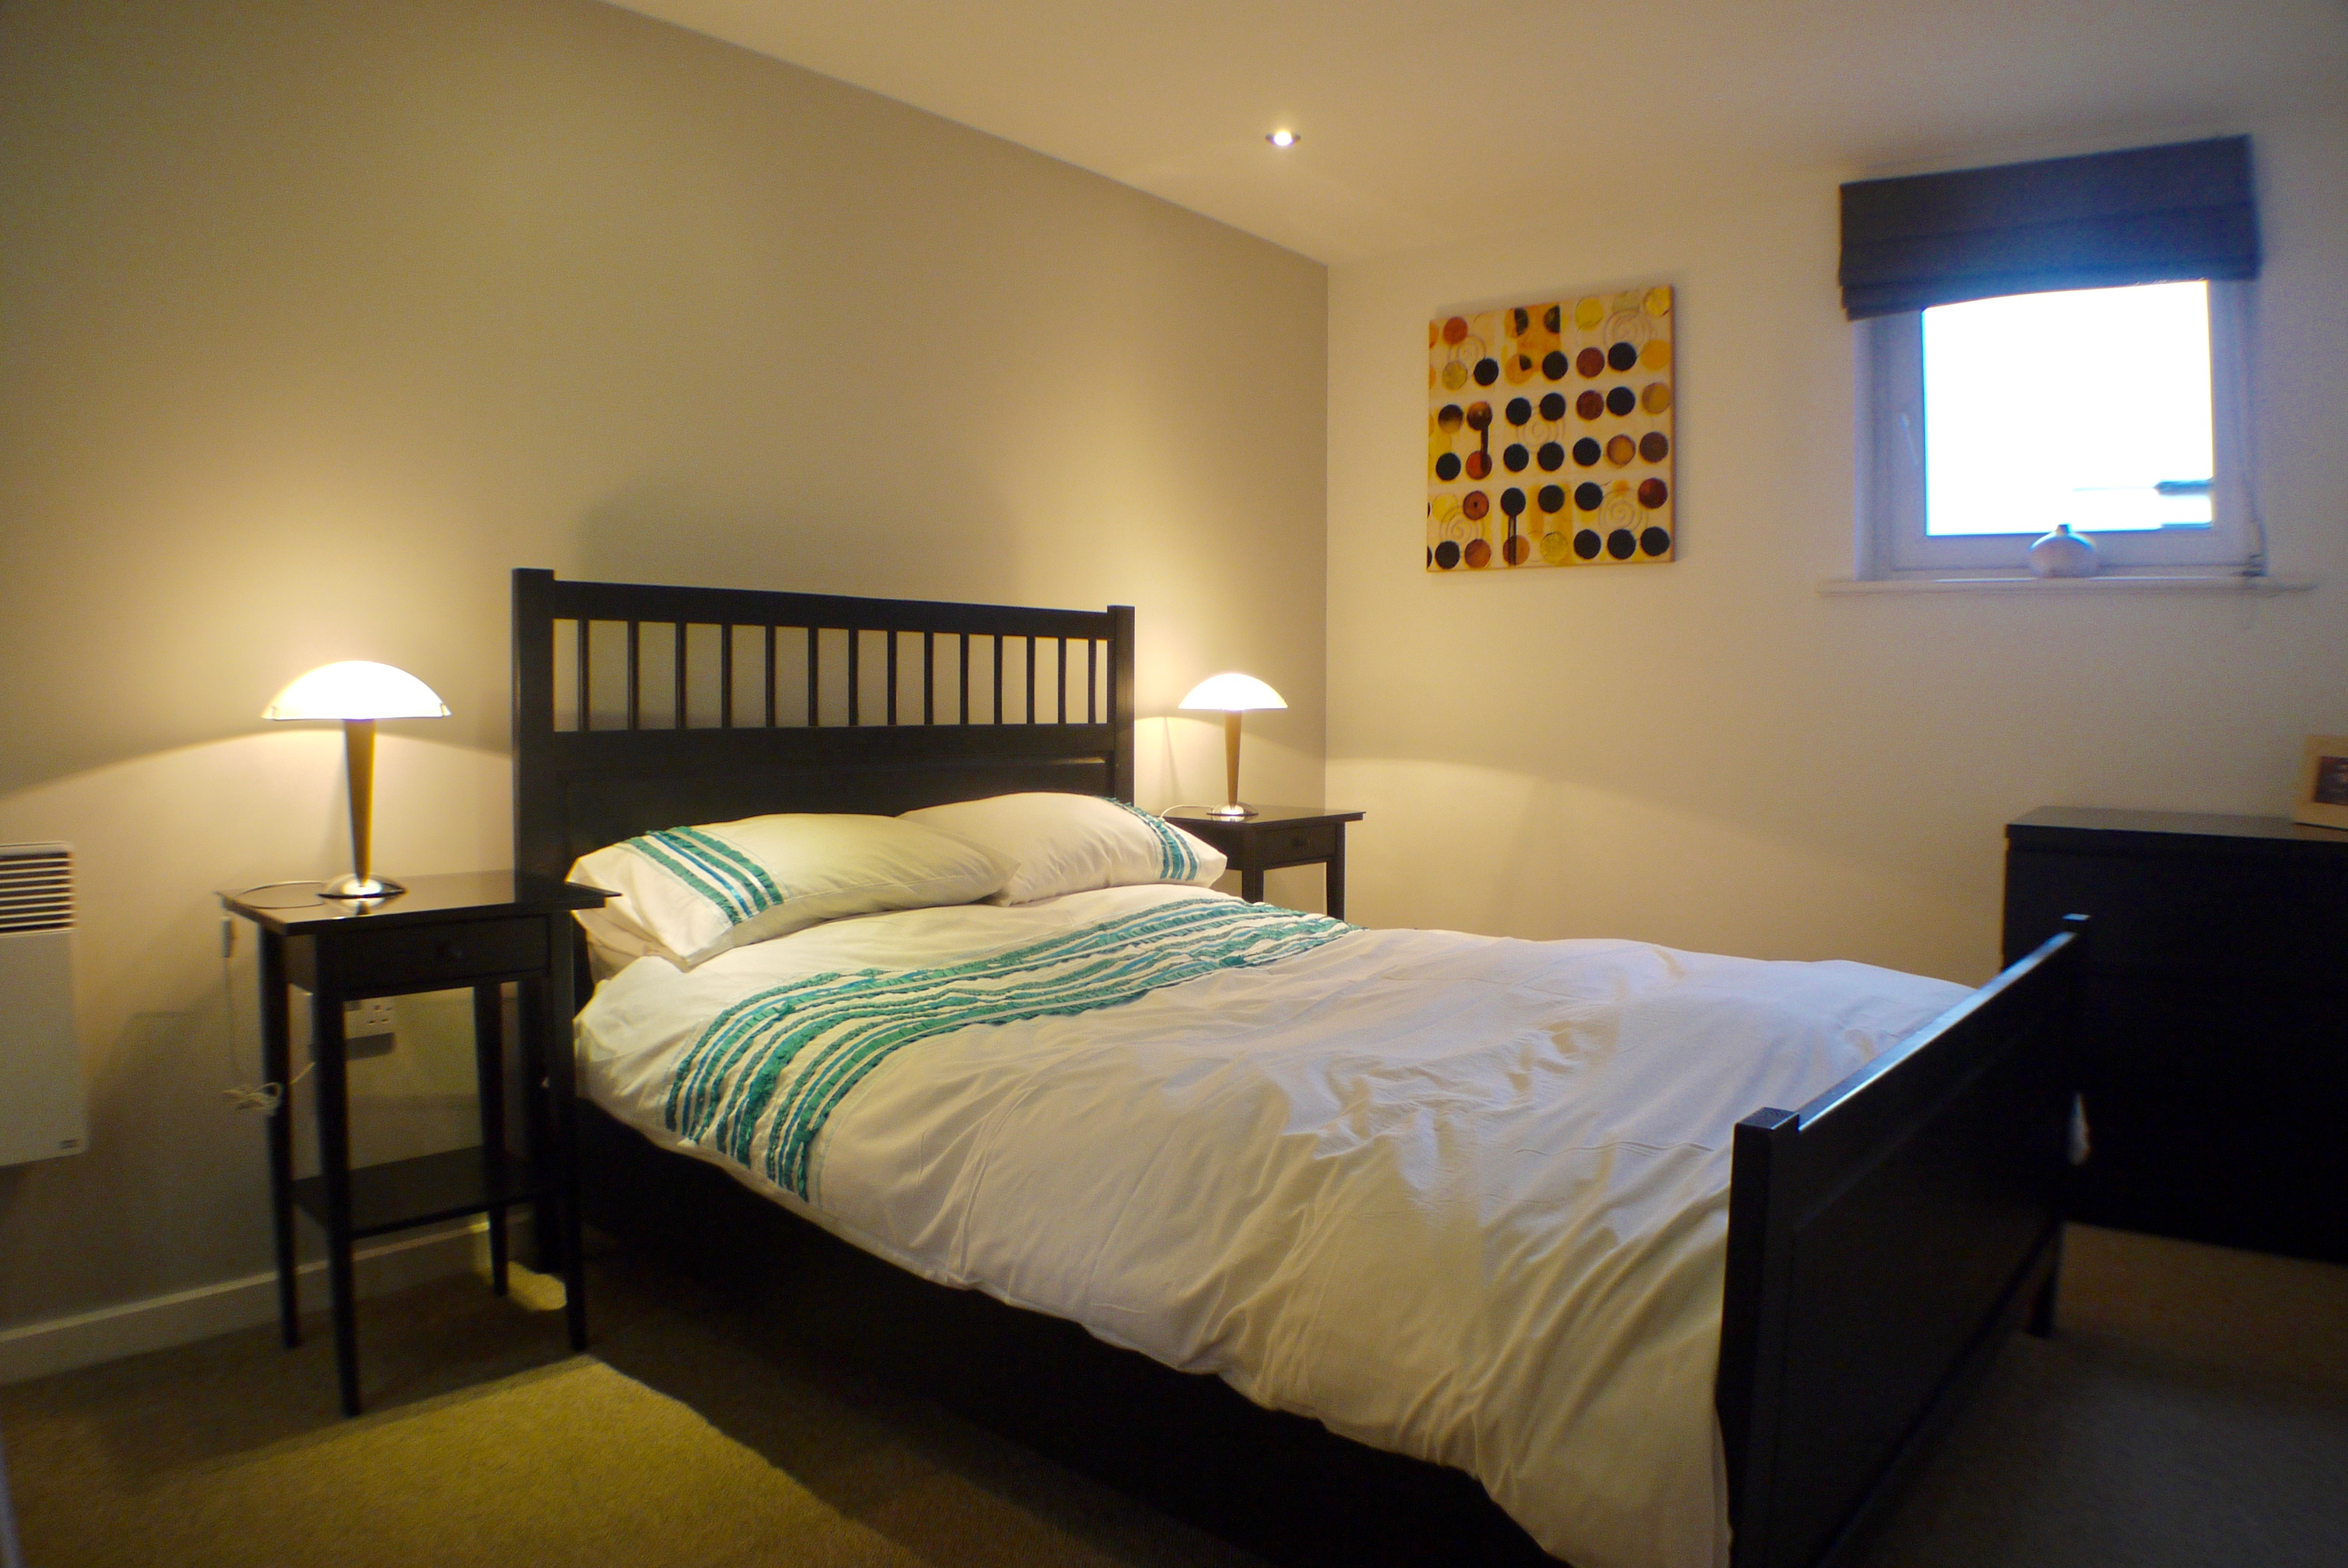 Double bed at Ebutler Grand Central Apartments